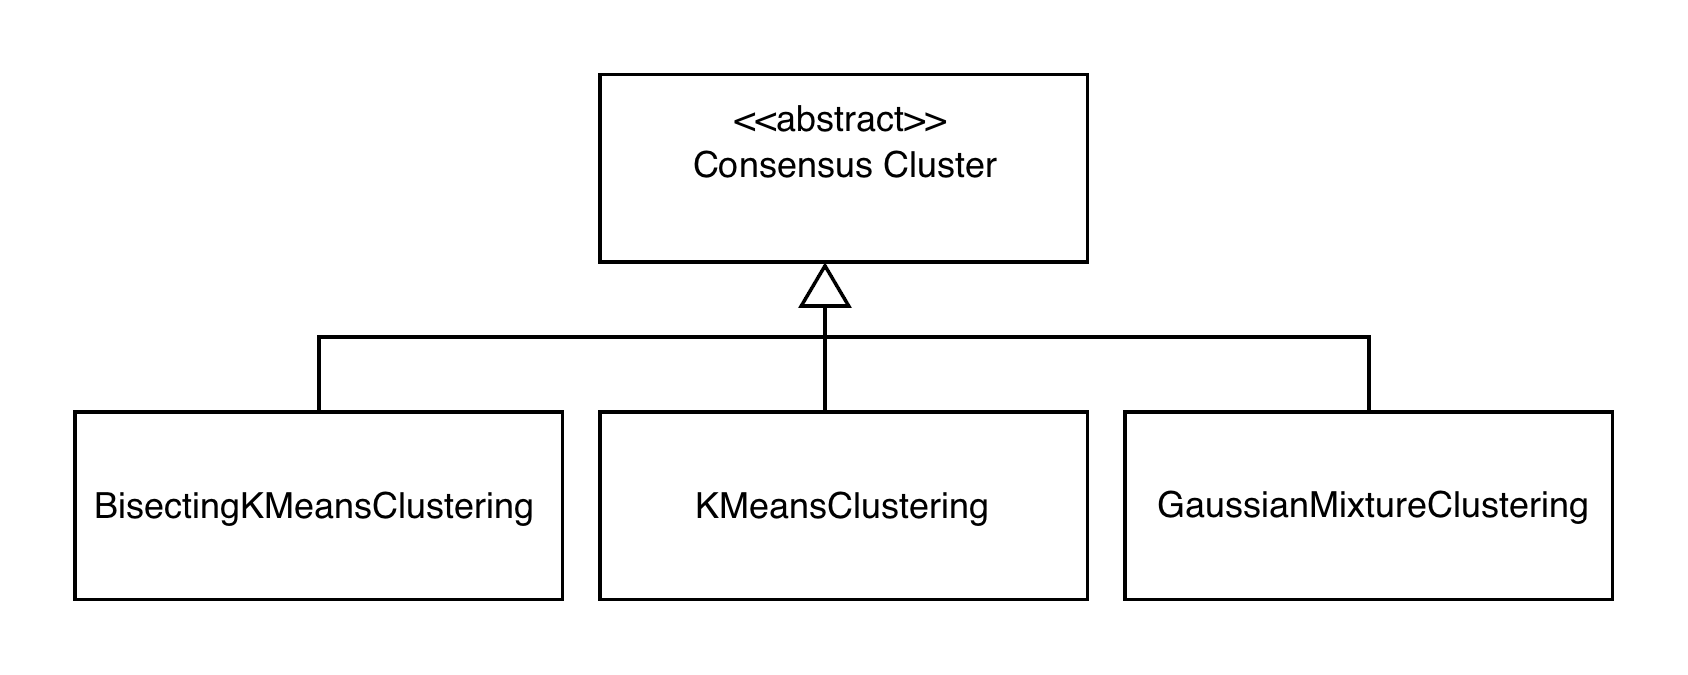 Figure 6. Class diagram for the demo application.